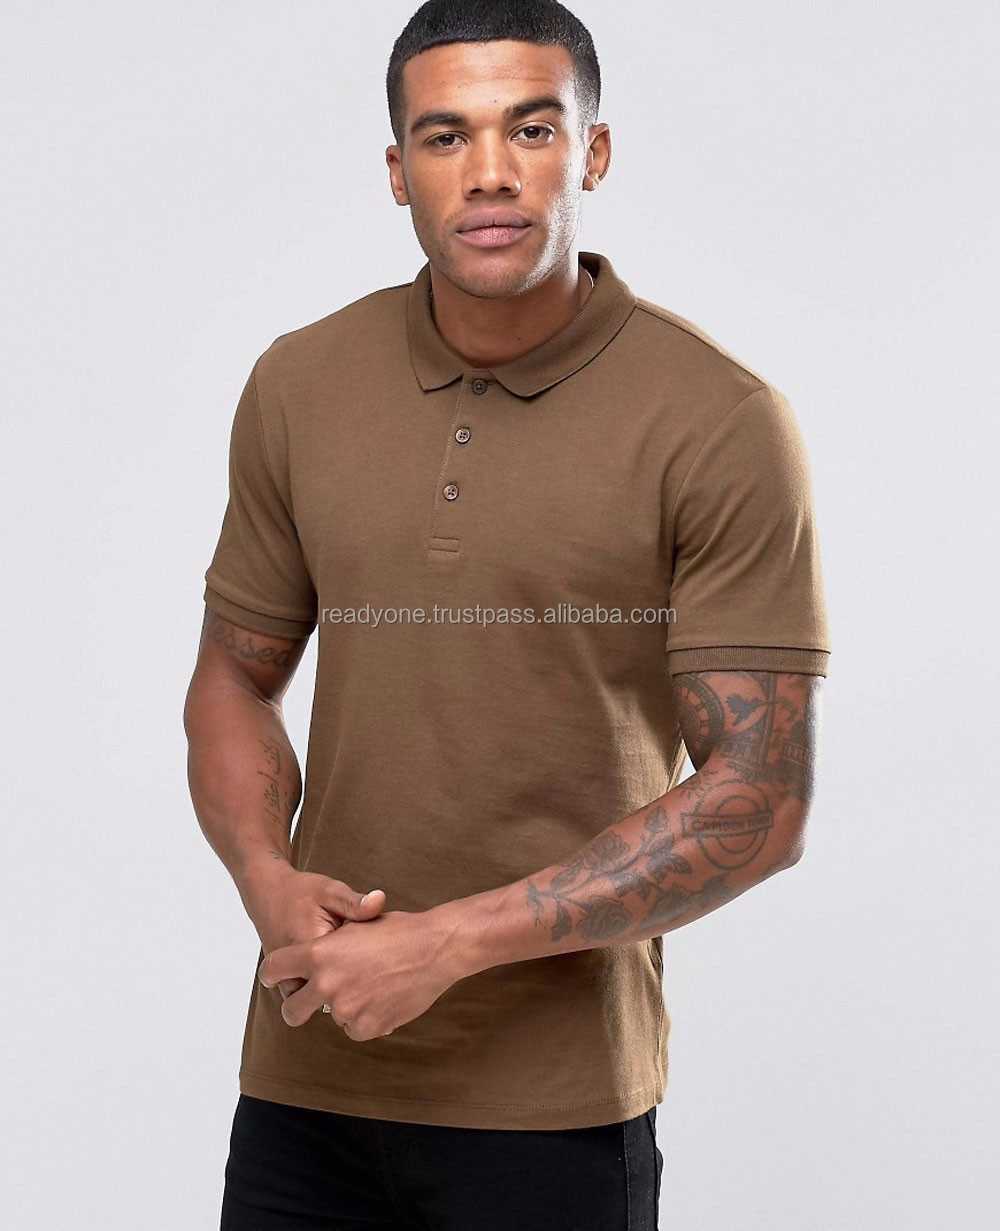 100% Cotton Polo Men 's Bamboo Clothing T -Shirt For Wholesale